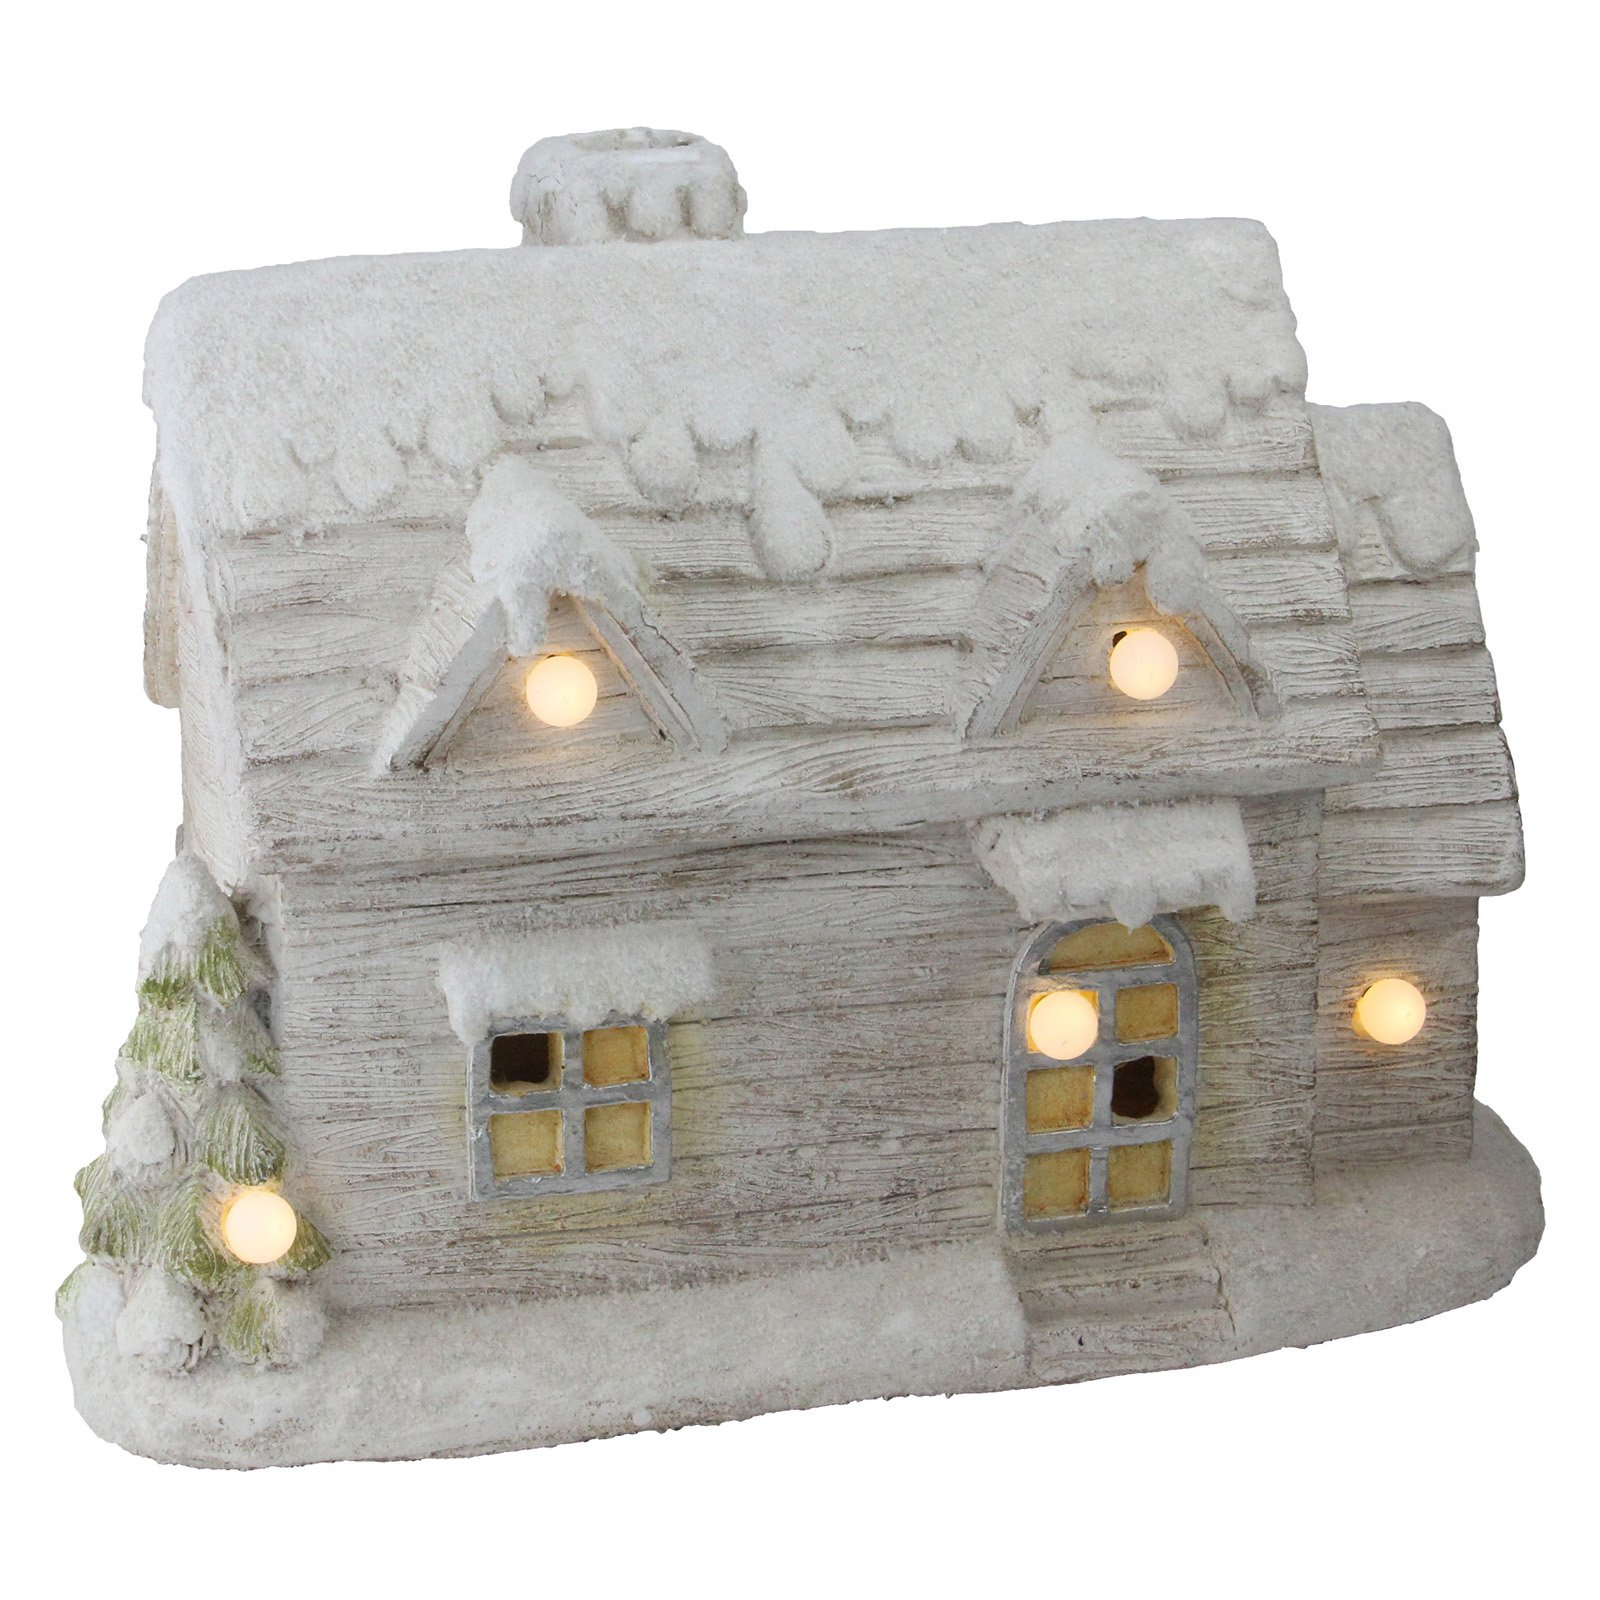 Northlight 14.5 in. LED Lighted Musical Snowy Cottage Christmas Decoration